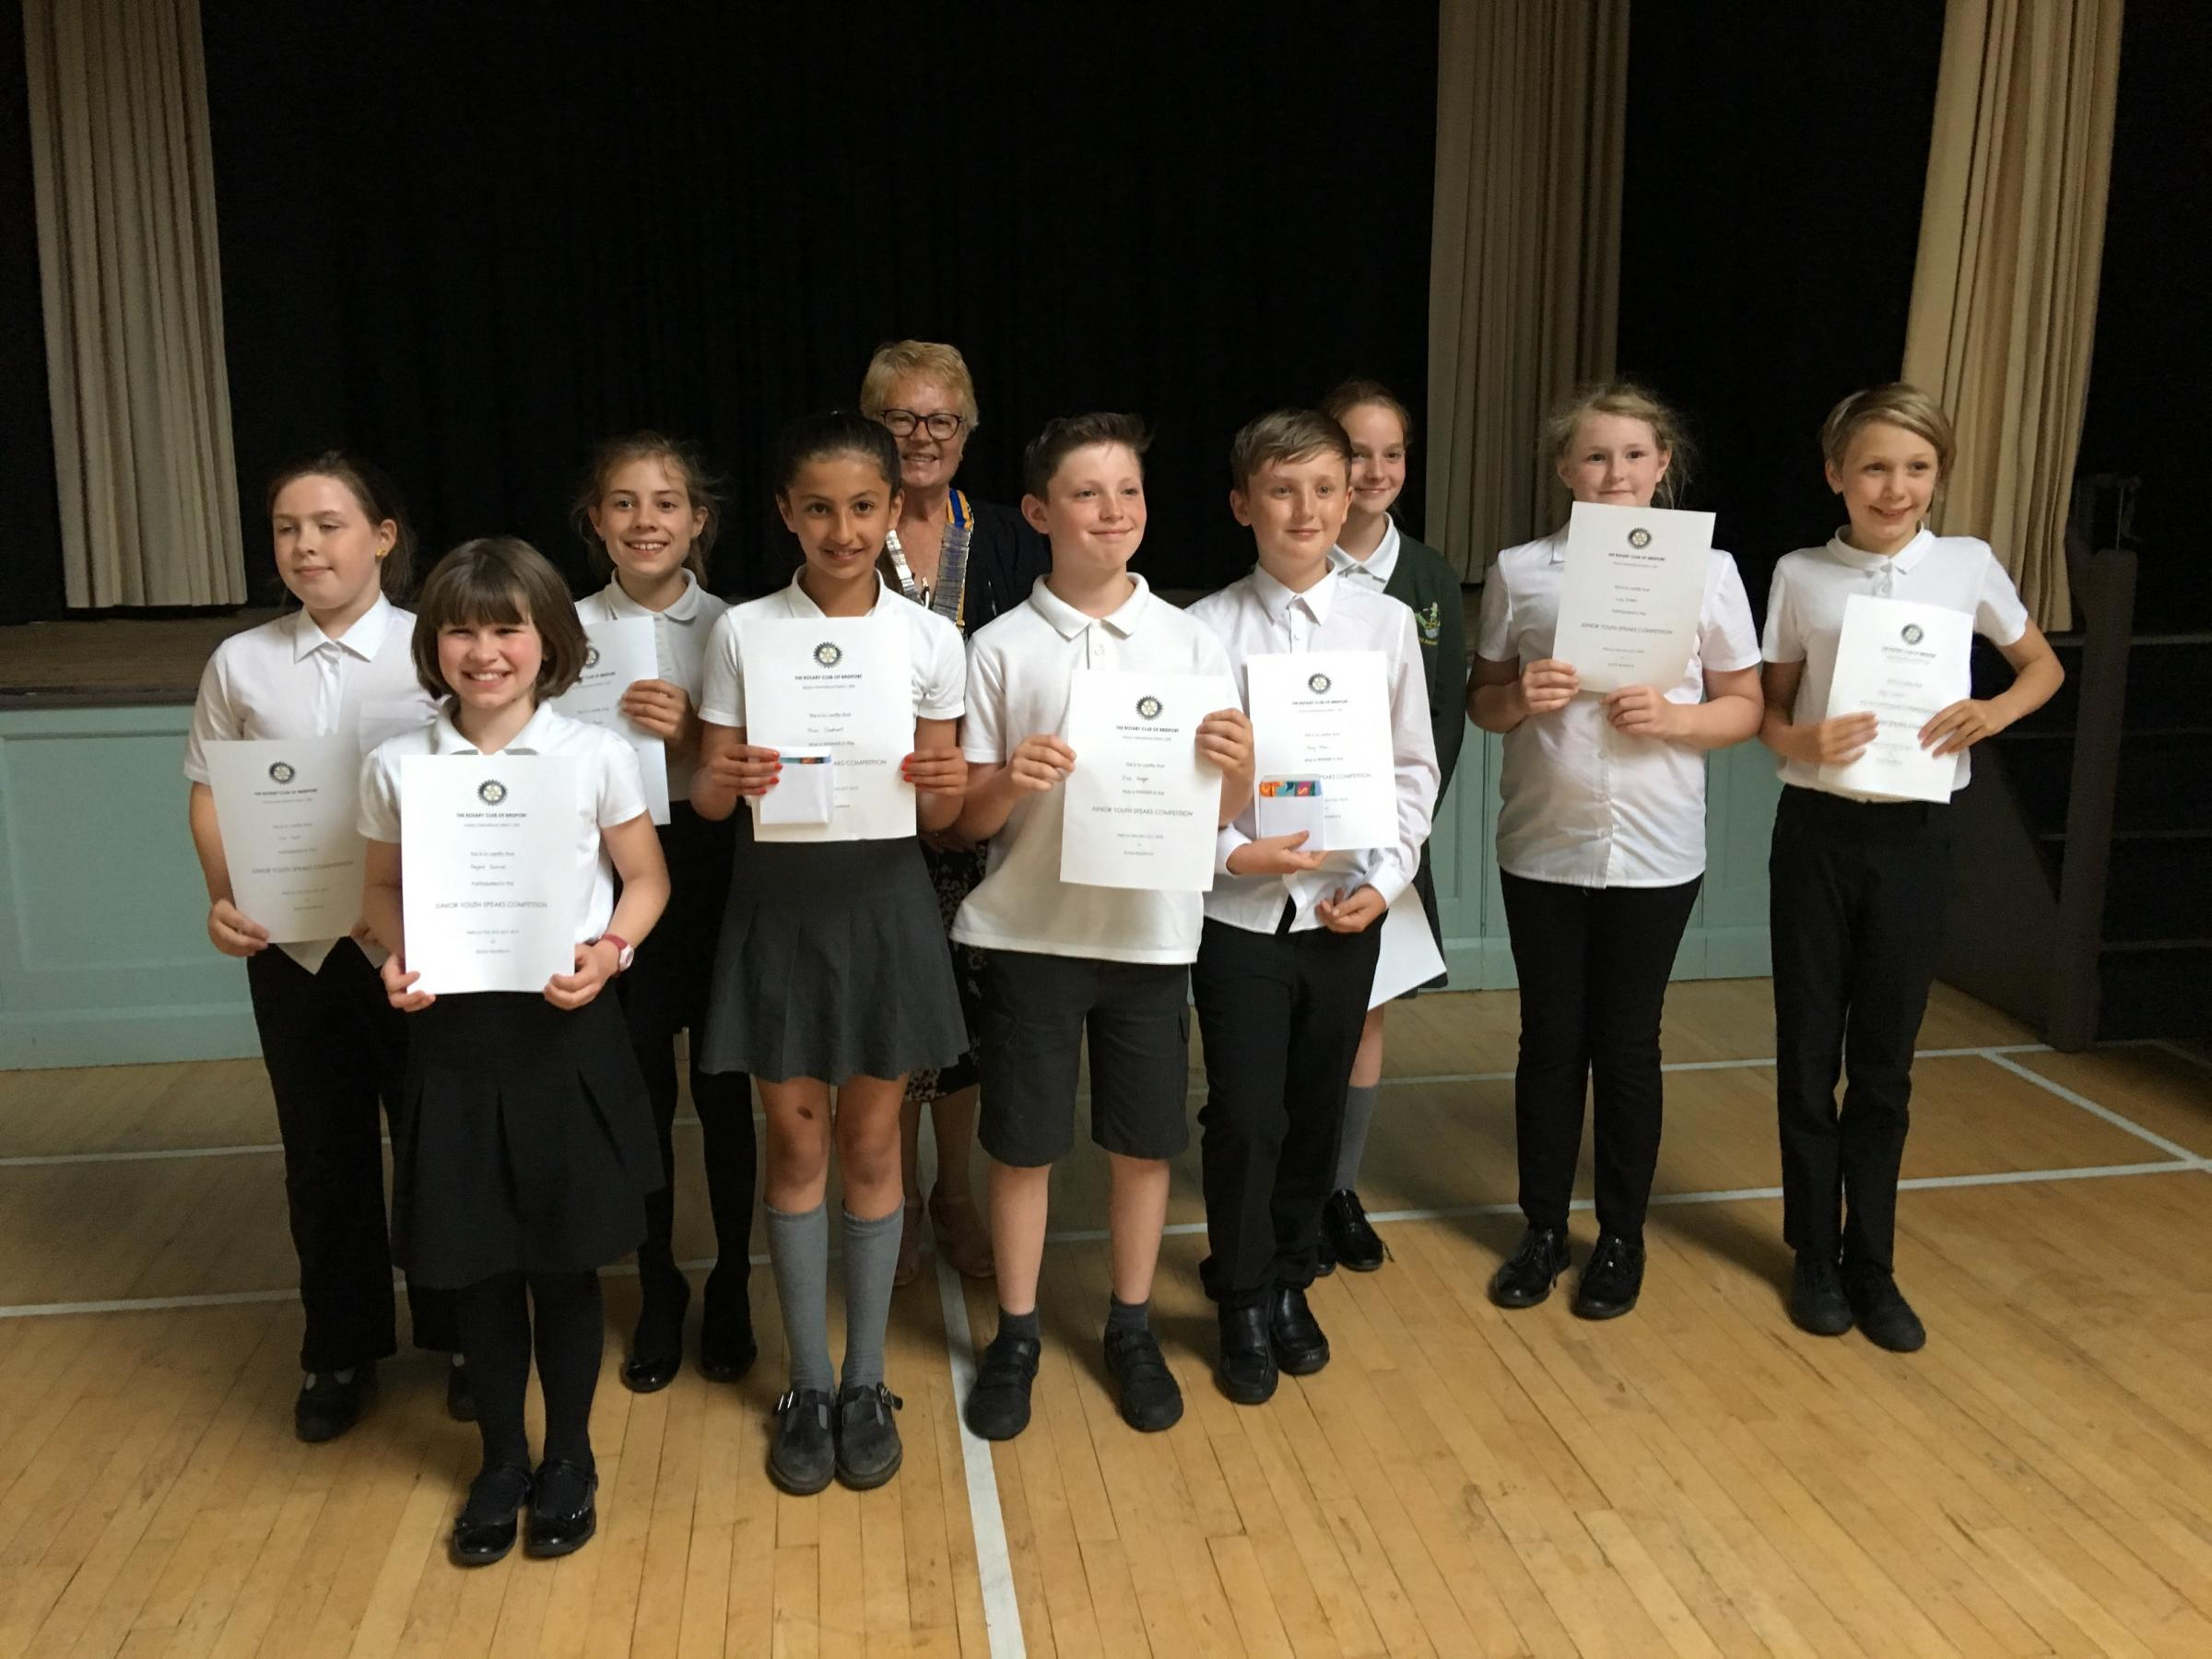 Bridport youngsters impress at Rotary's Youth Speaks